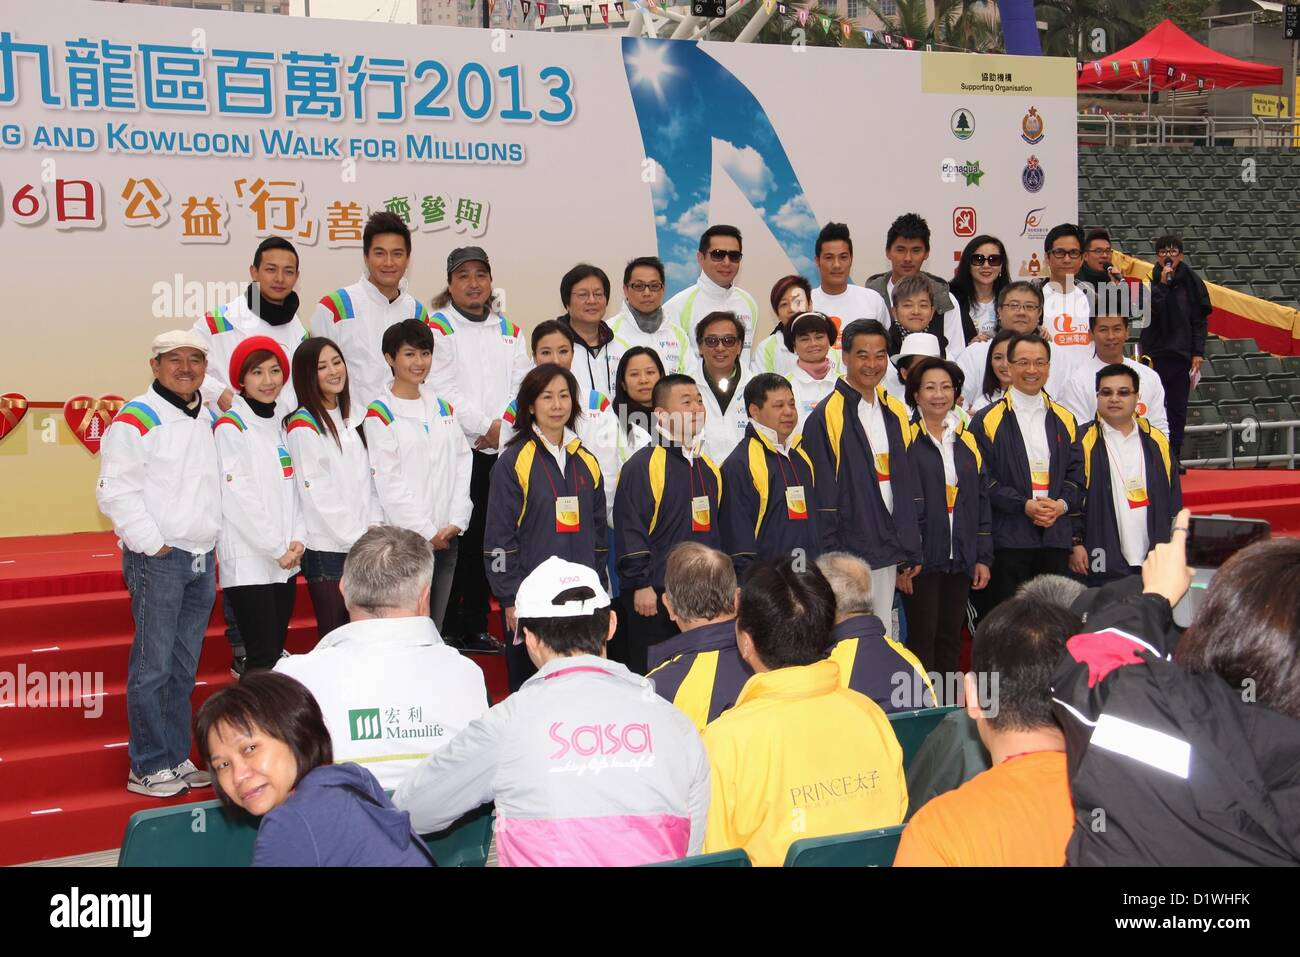 Leung Chun Ying, the chief executive of HKSAR, officiated charity activity 'Hong Kong and Kowloon Walk for Millions' - Stock Image